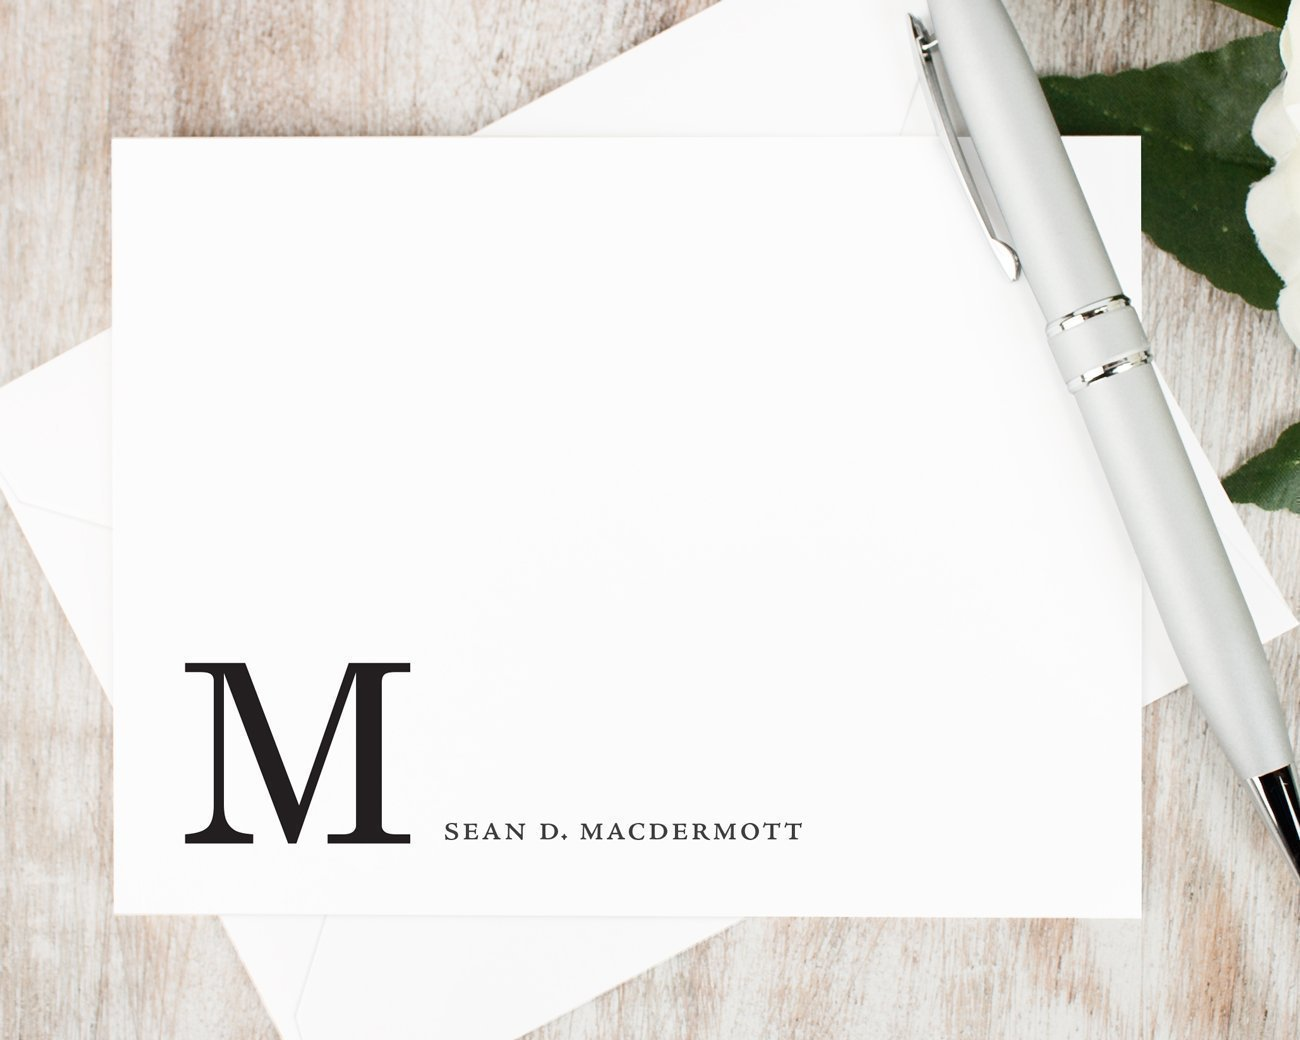 CORNER MONOGRAM - Personalized Flat Stationery Set - Professional Business Note Cards, Classic Traditional Thank You Cards, Stationary Notecards and Envelopes by Curio Press